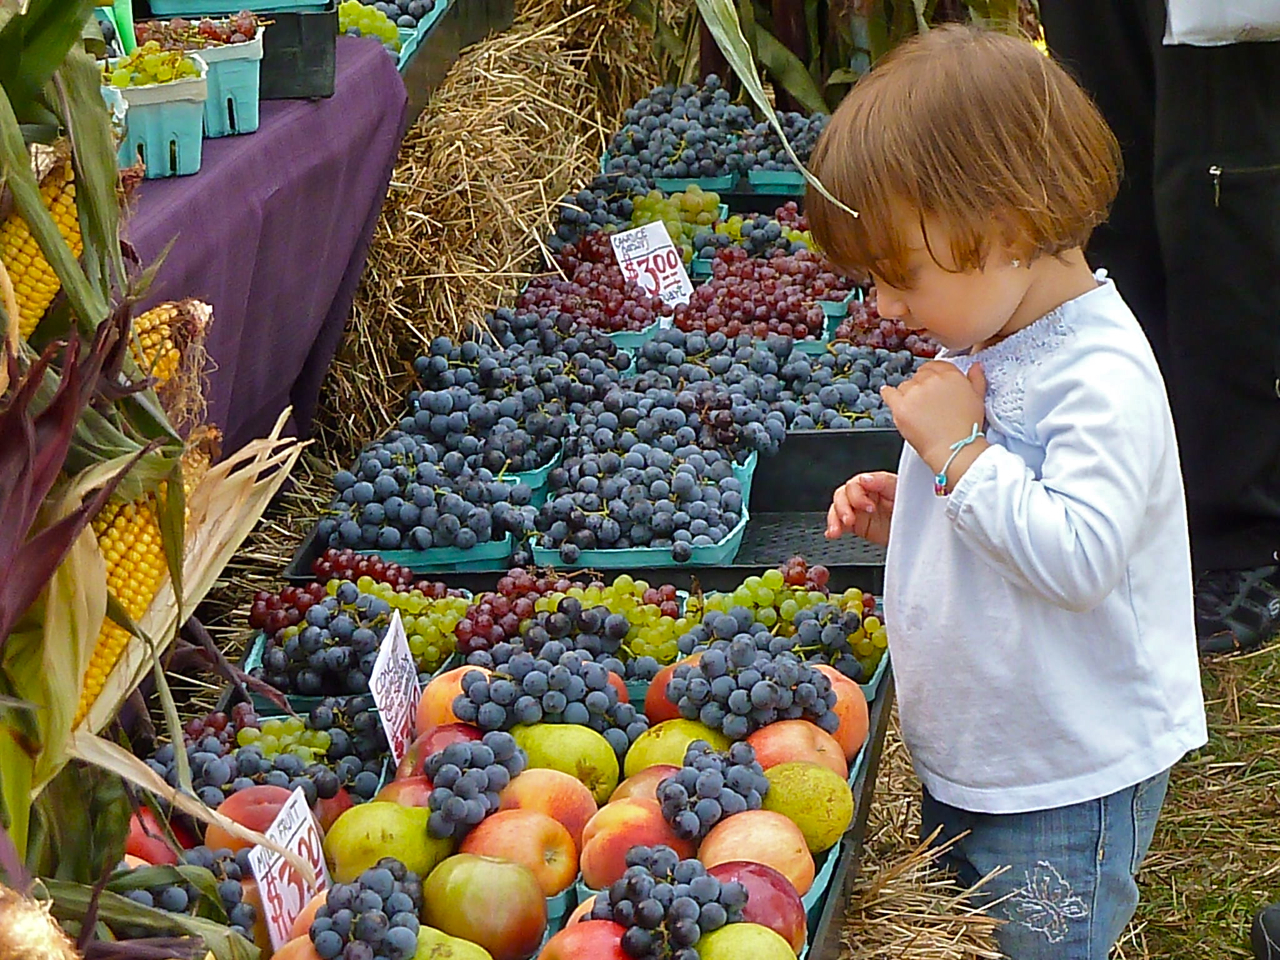 child looking at fruit